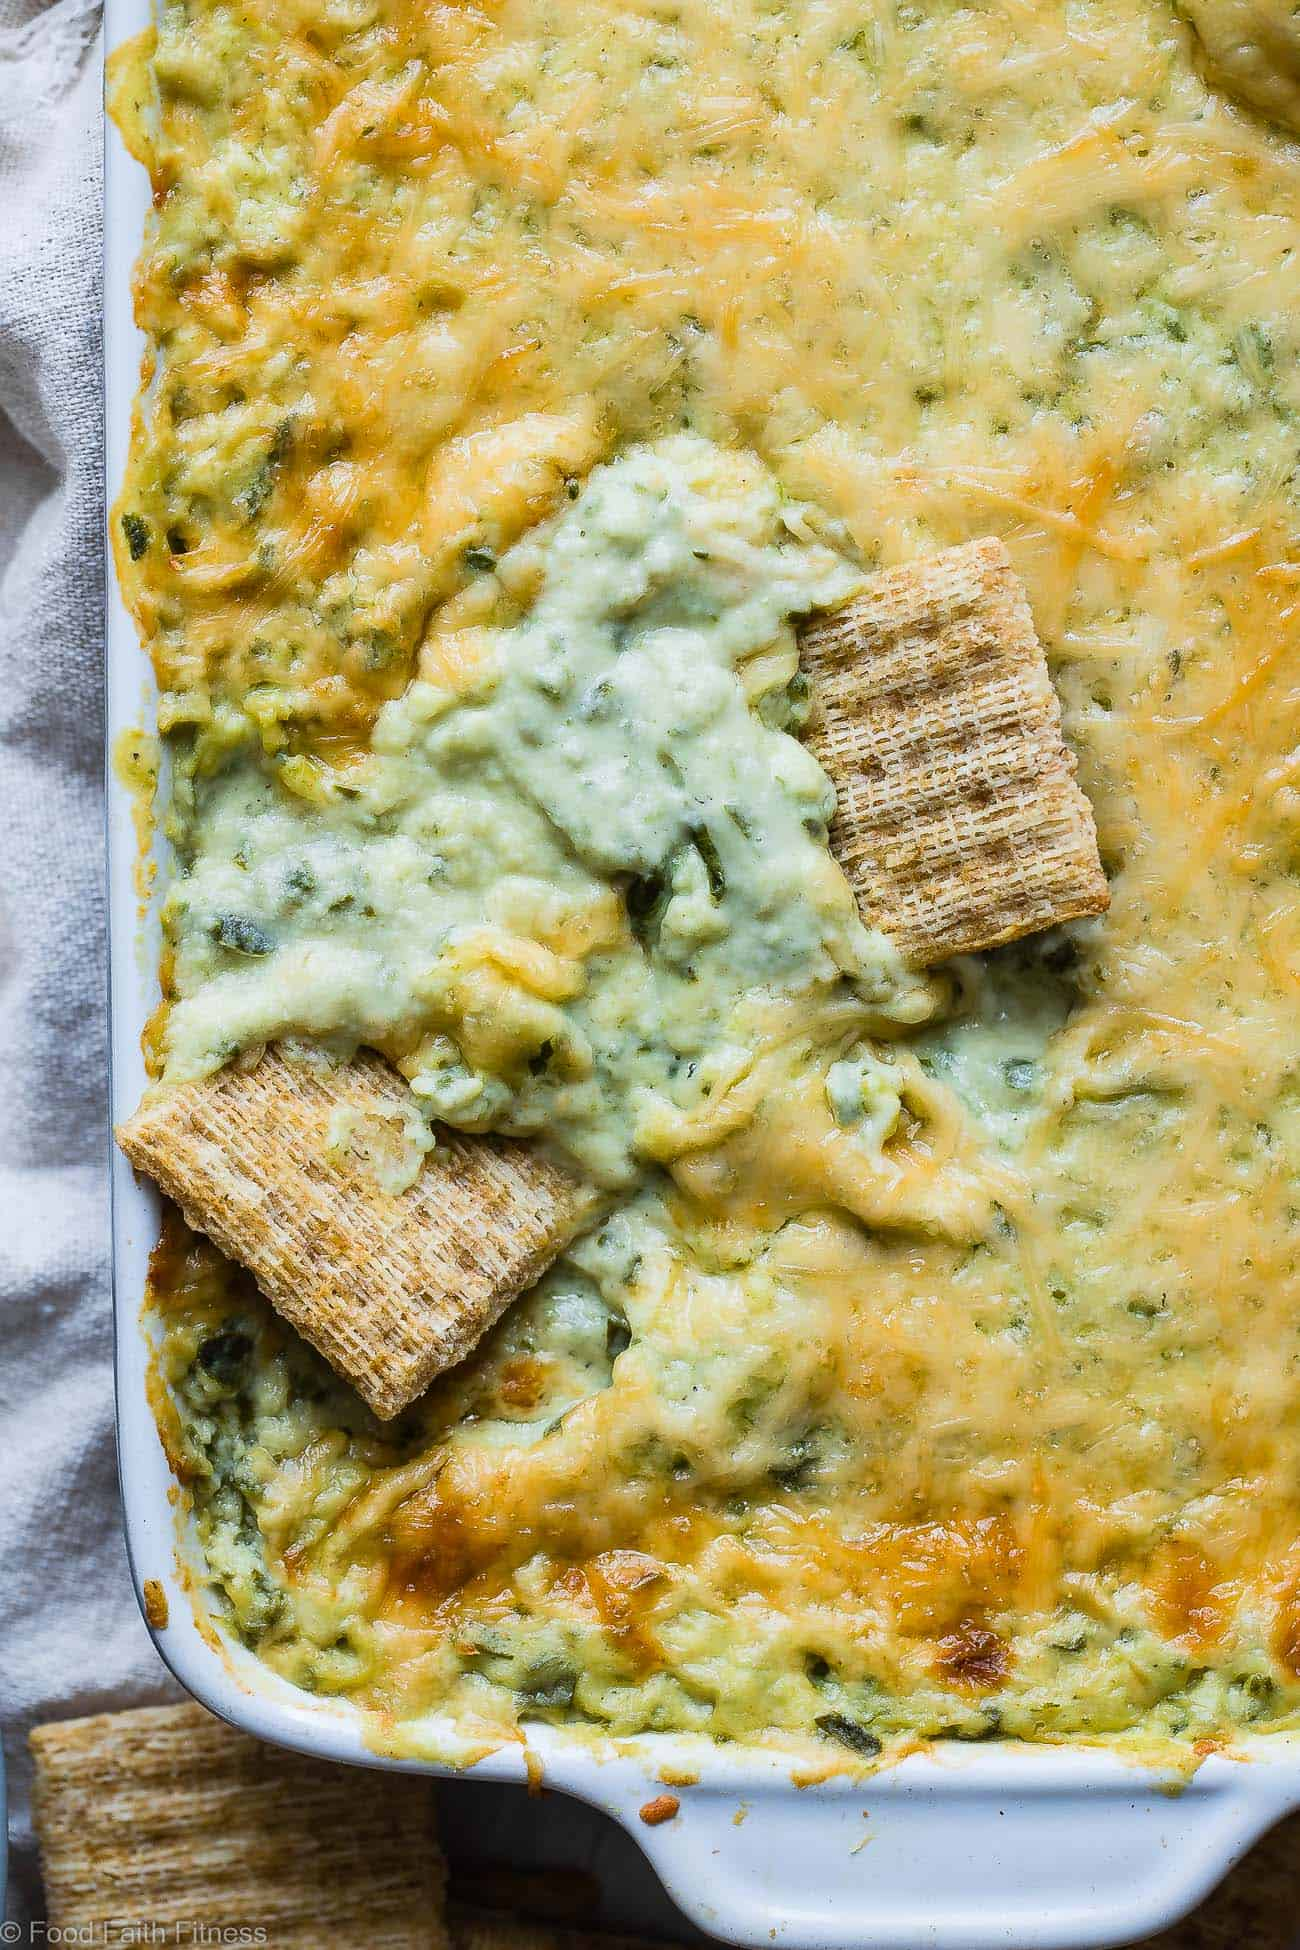 Easy Homemade Greek Yogurt Spinach Dip - This easy, cheesy, baked dip uses Greek yogurt to make it SUPER thick and creamy! It's low carb, protein packed and always a hit at parties! No one believes it's healthy! | Foodfaithfitness.com | @FoodFaithFit